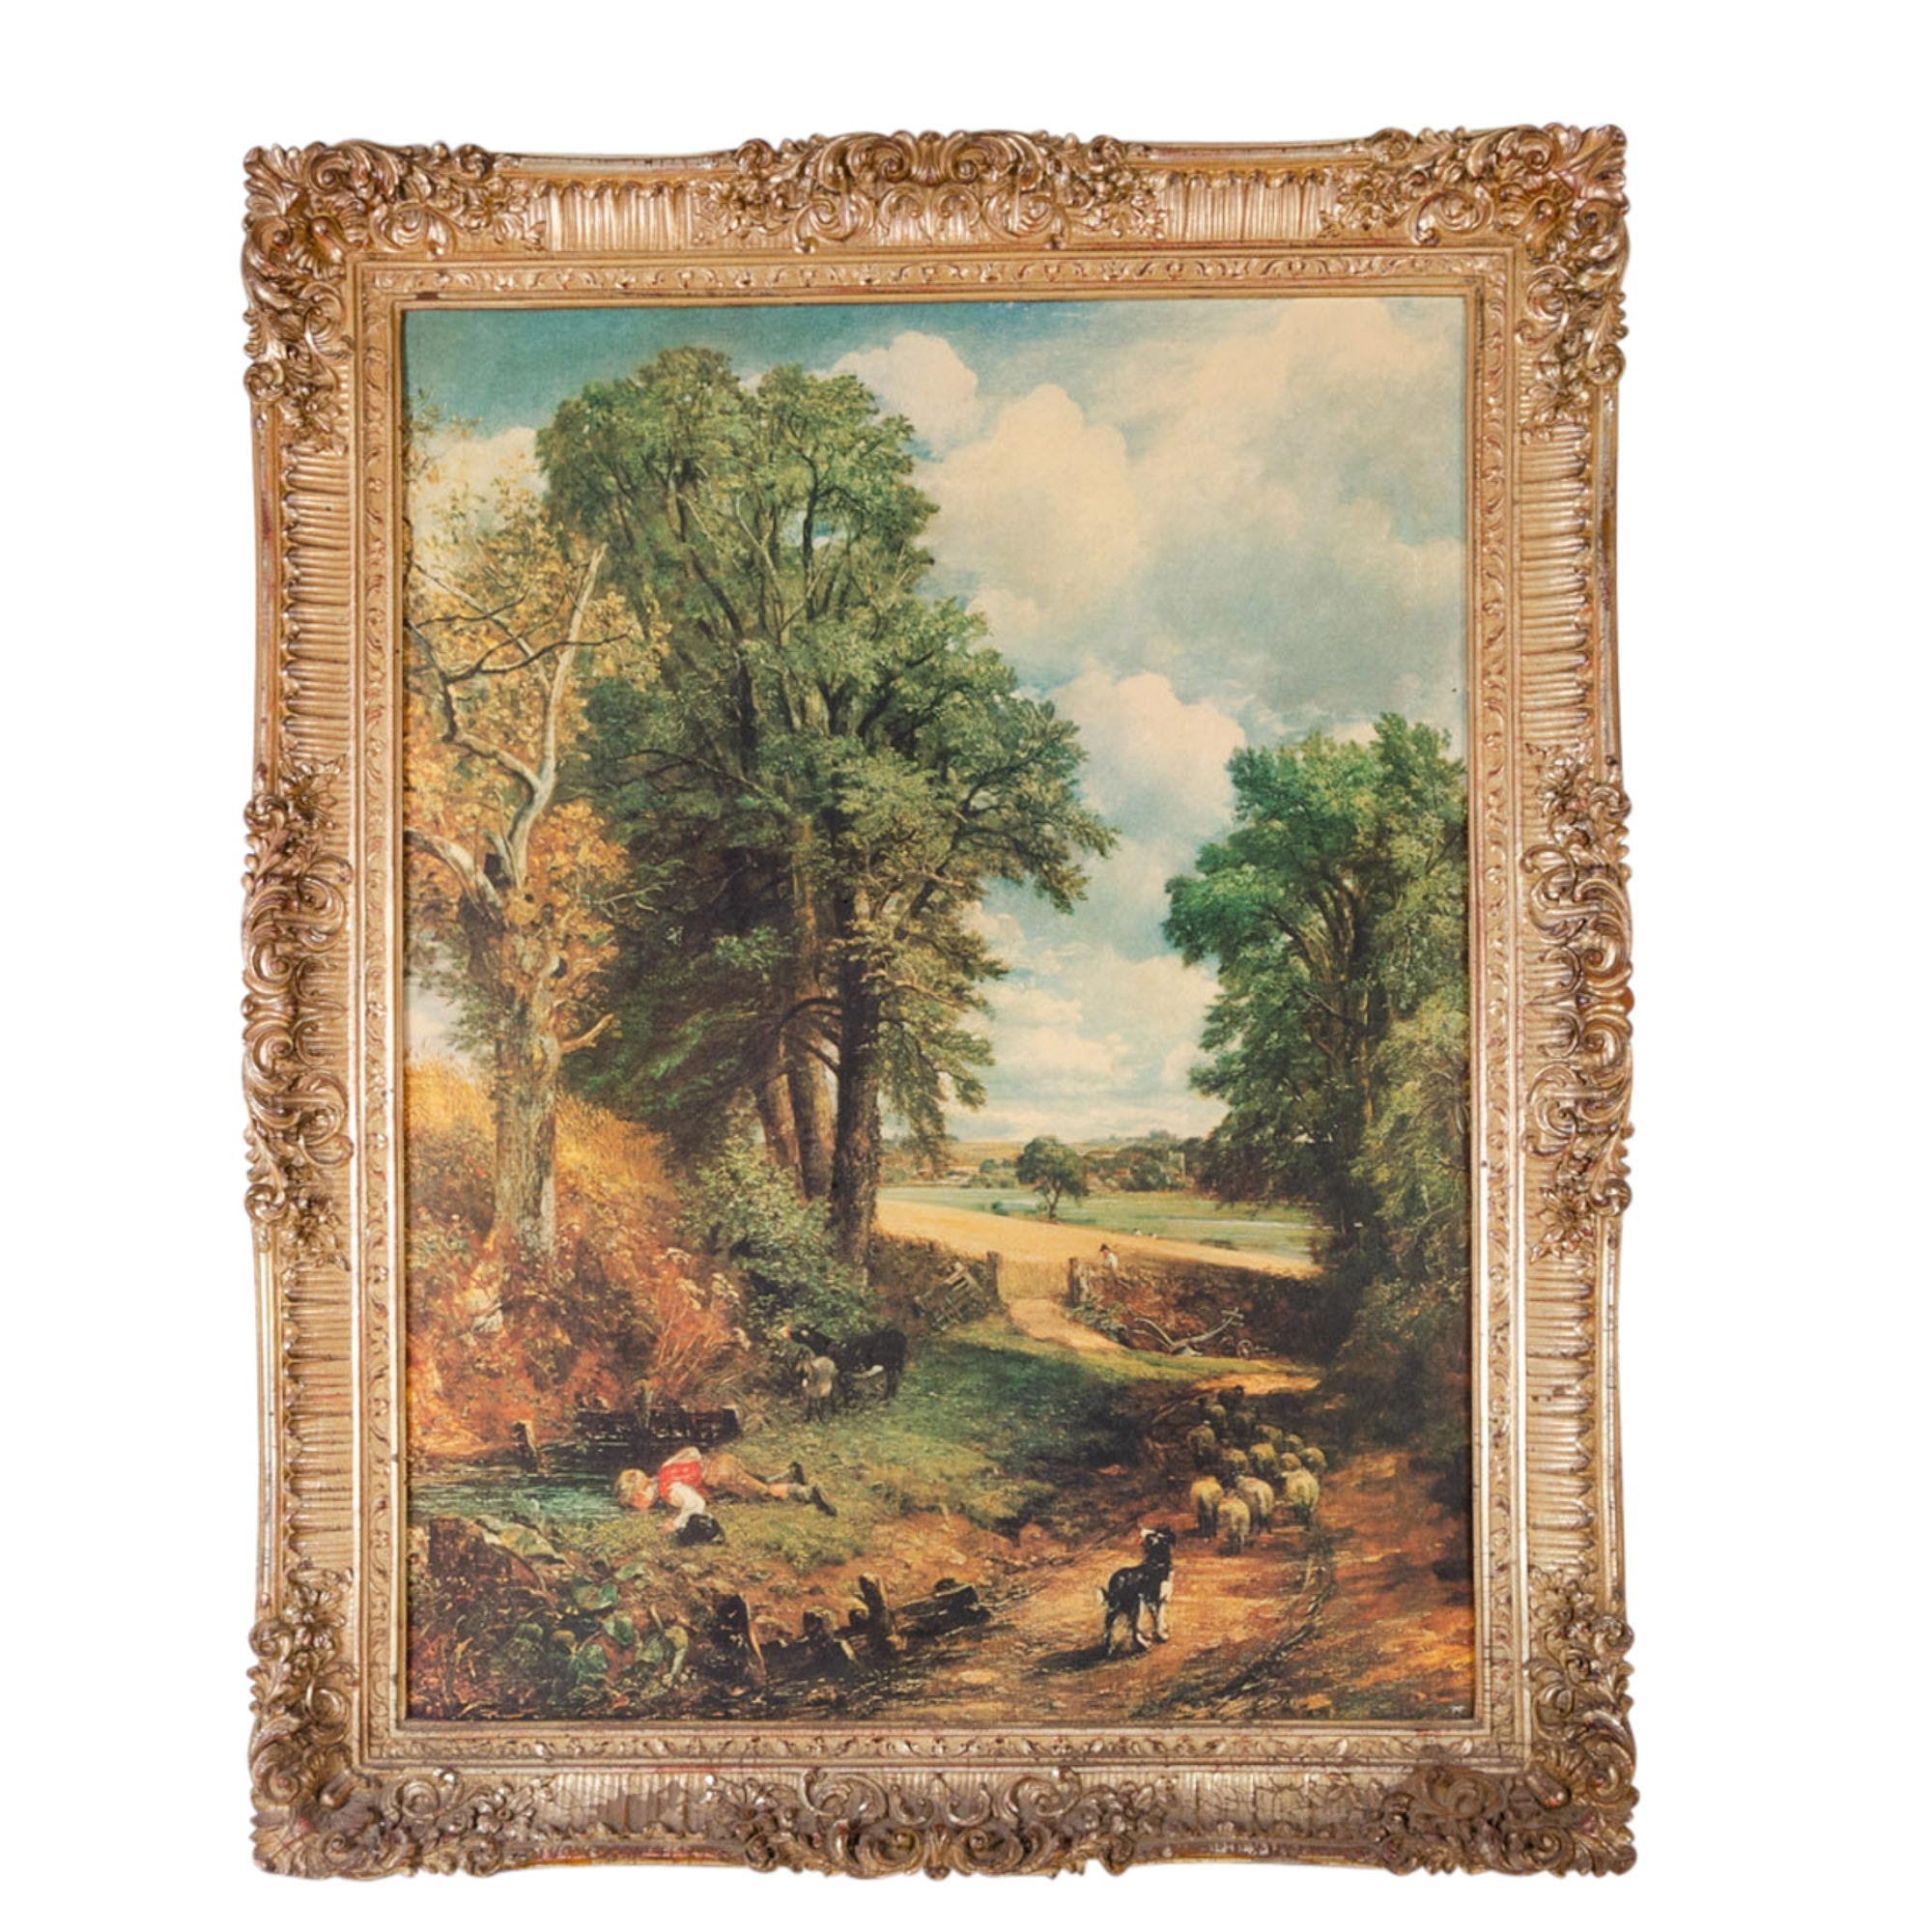 Vintage Landscape Offset Lithograph in Ornate Carved Gilt Frame